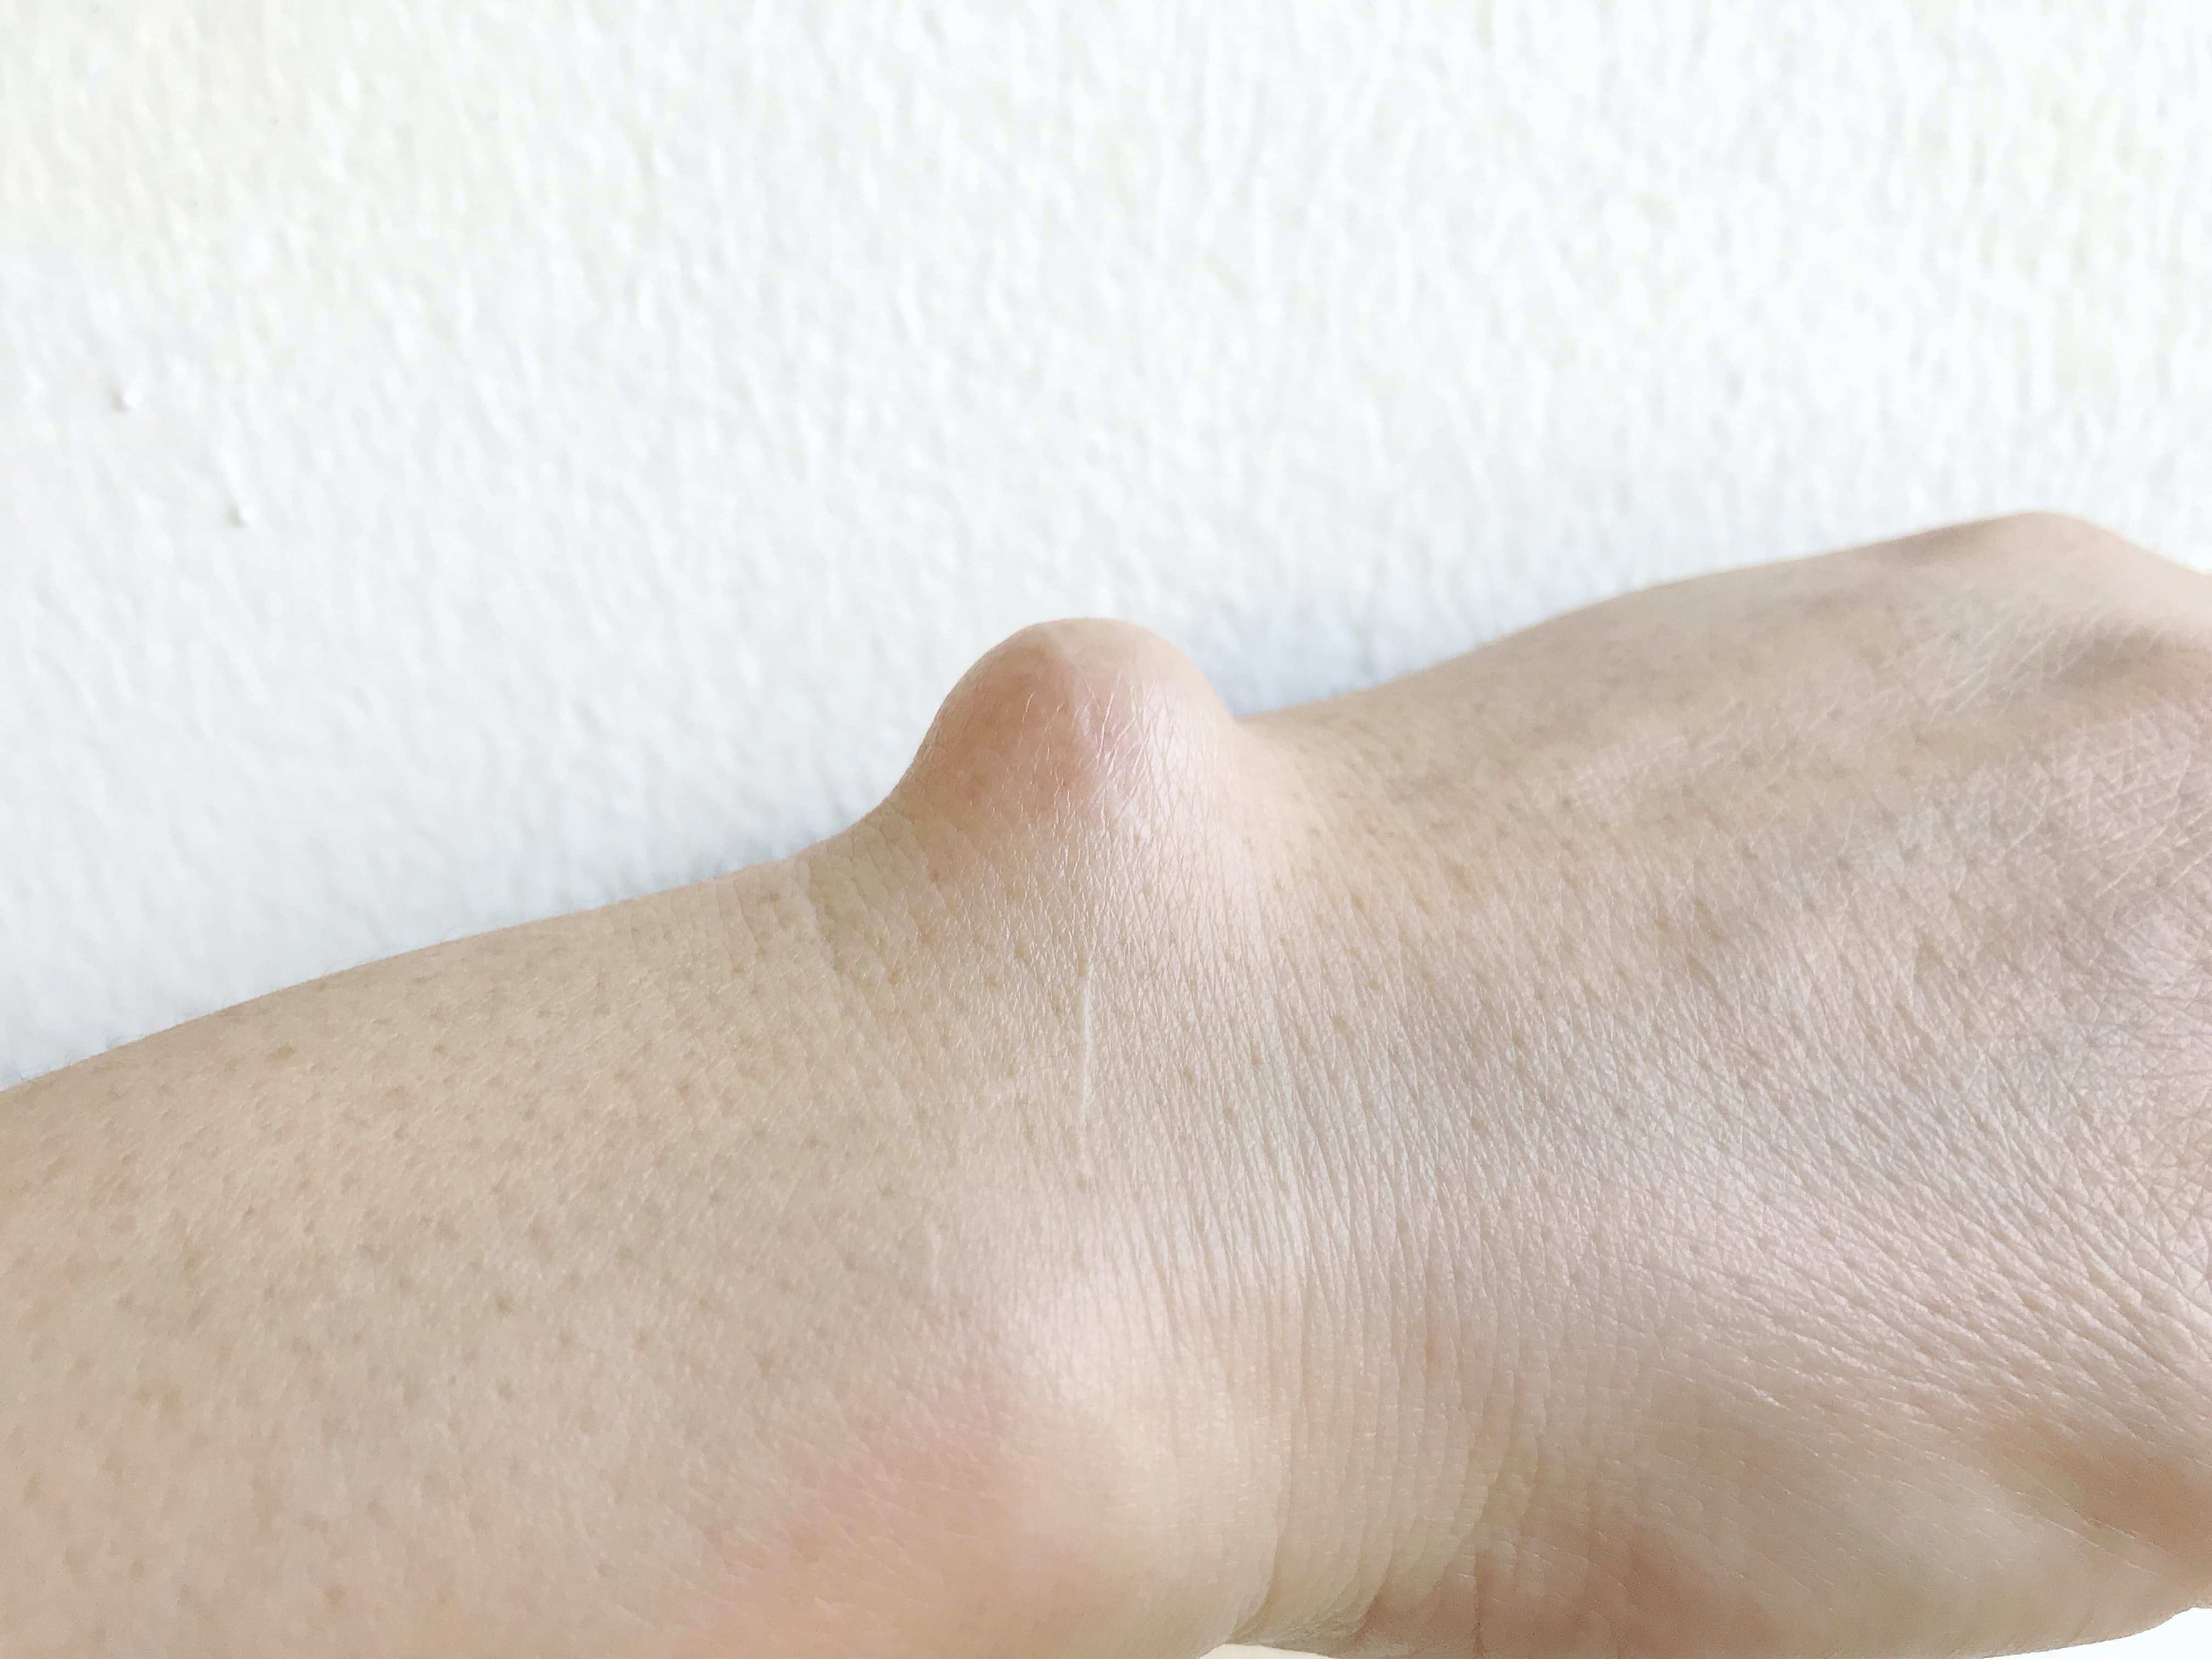 An image depicting a person suffering from yellow or white hand bump symptoms